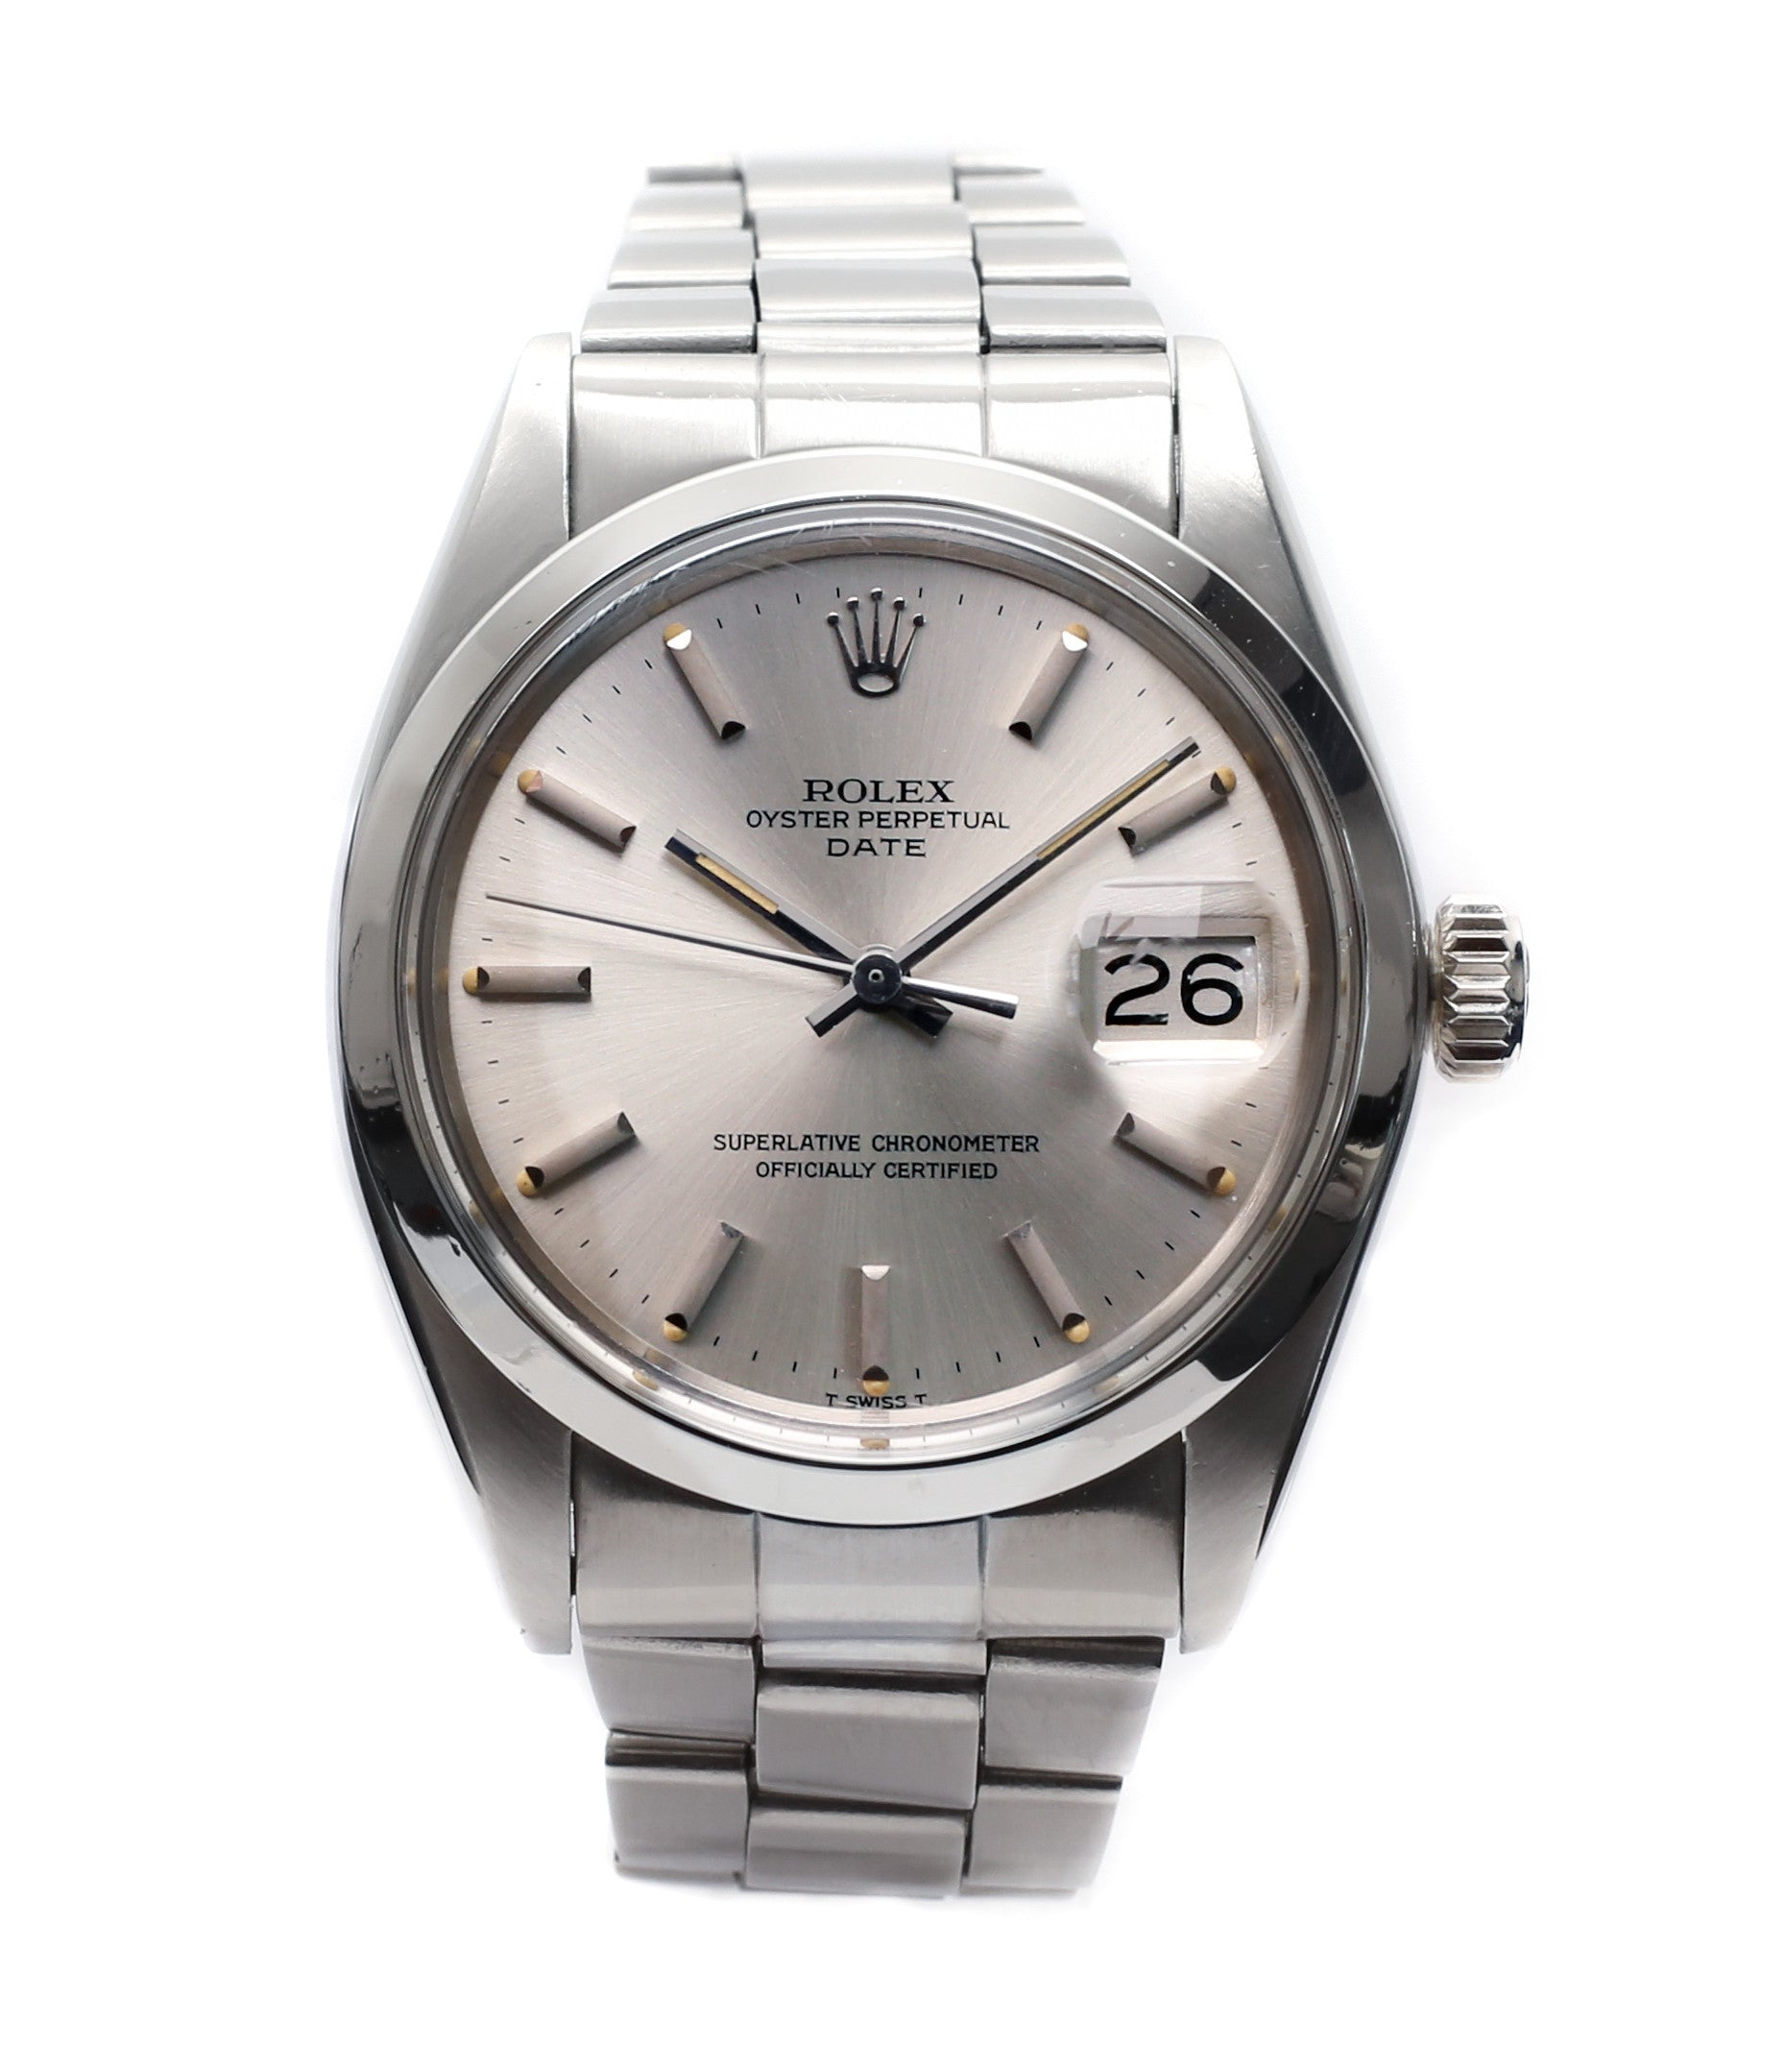 buy vintage Rolex 1500 Oyster Perpetual Date steel sport watch online for  sale at A Collected 22e5666903b3